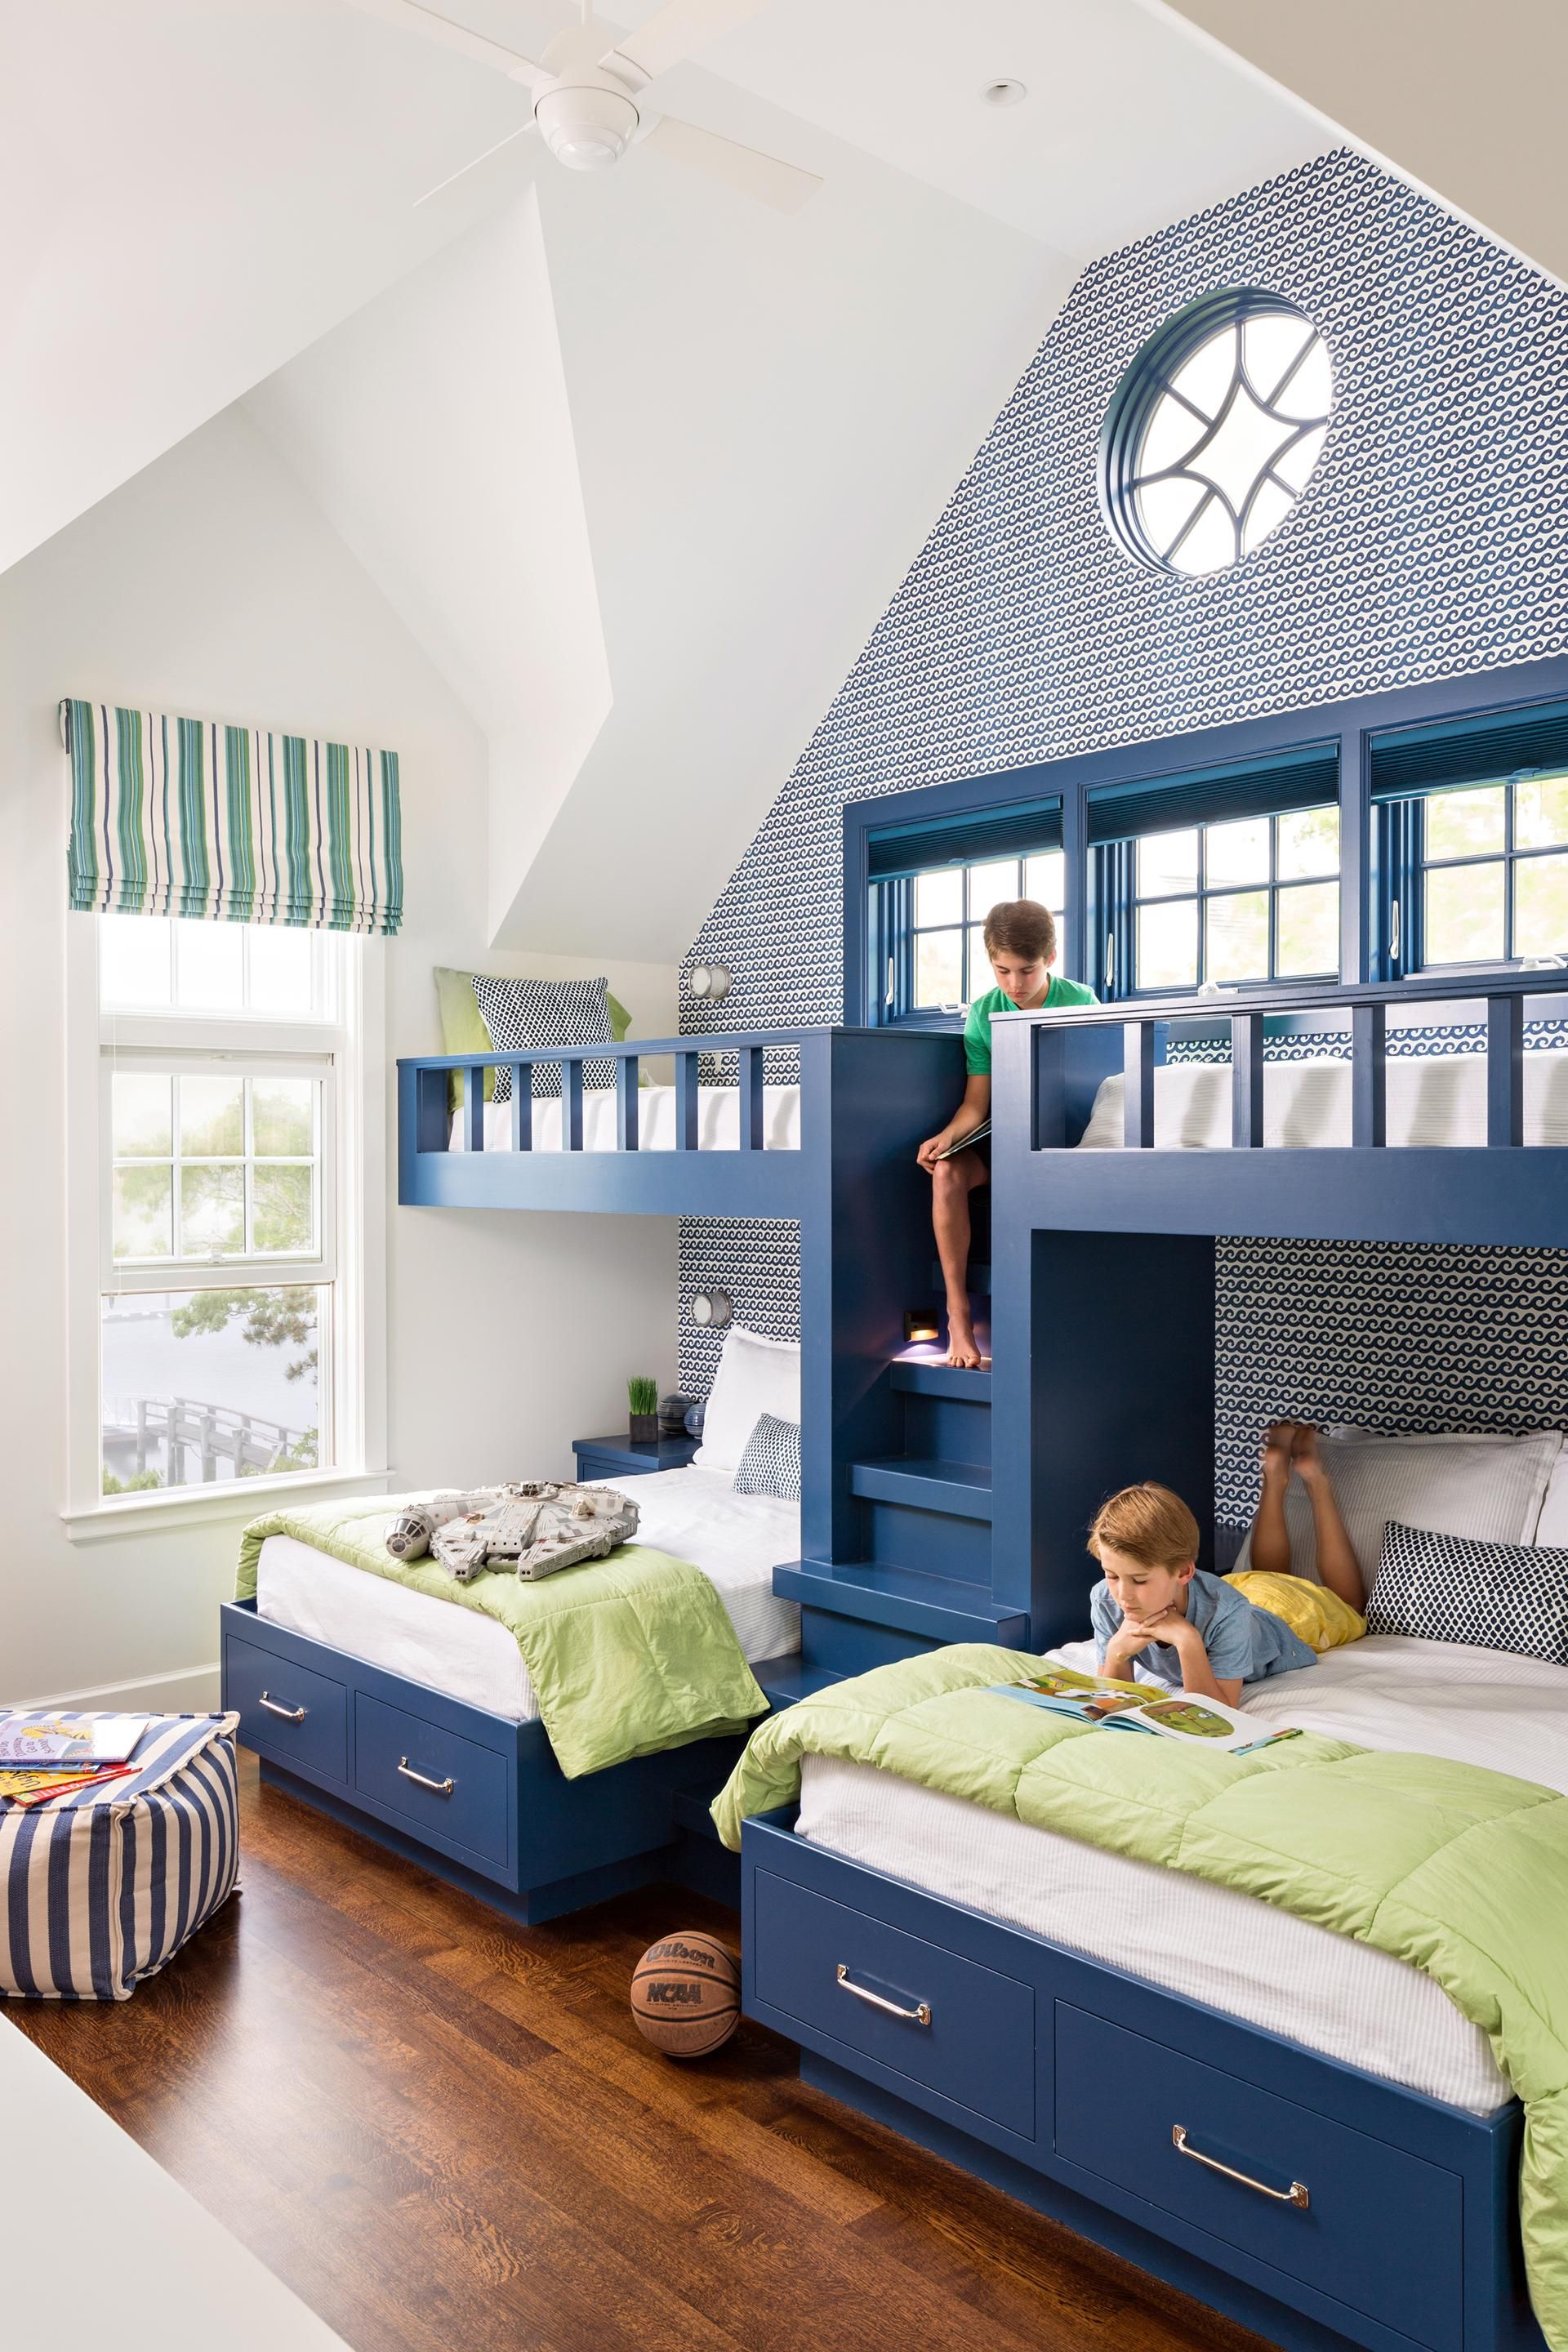 Built in loft bed ideas  A Cape Cod home channels West Coast style  Bunk bed Cape cod style